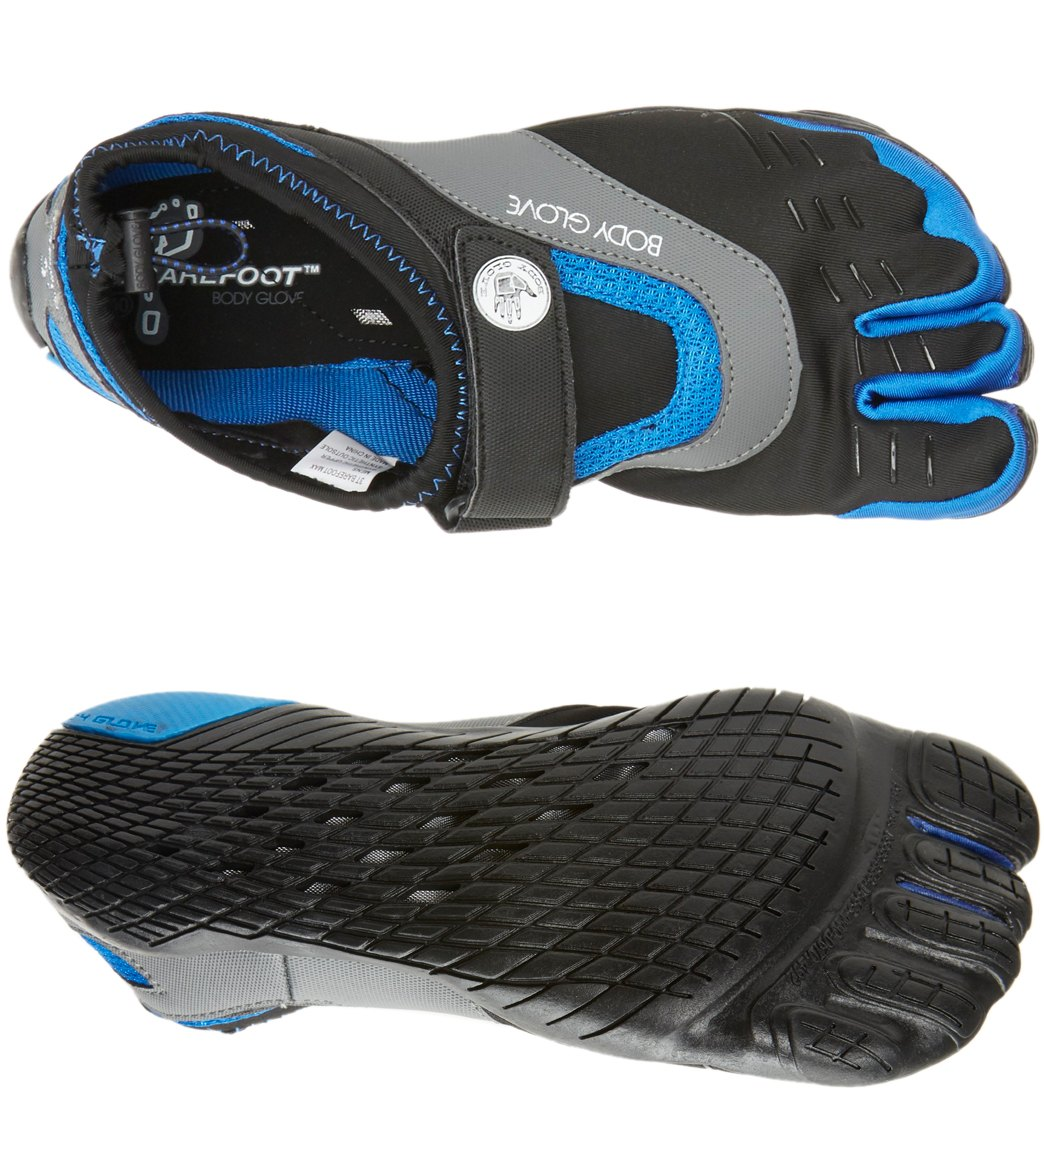 04c3ee66544a Body Glove Men s 3T Max Water Shoe at SwimOutlet.com - Free Shipping